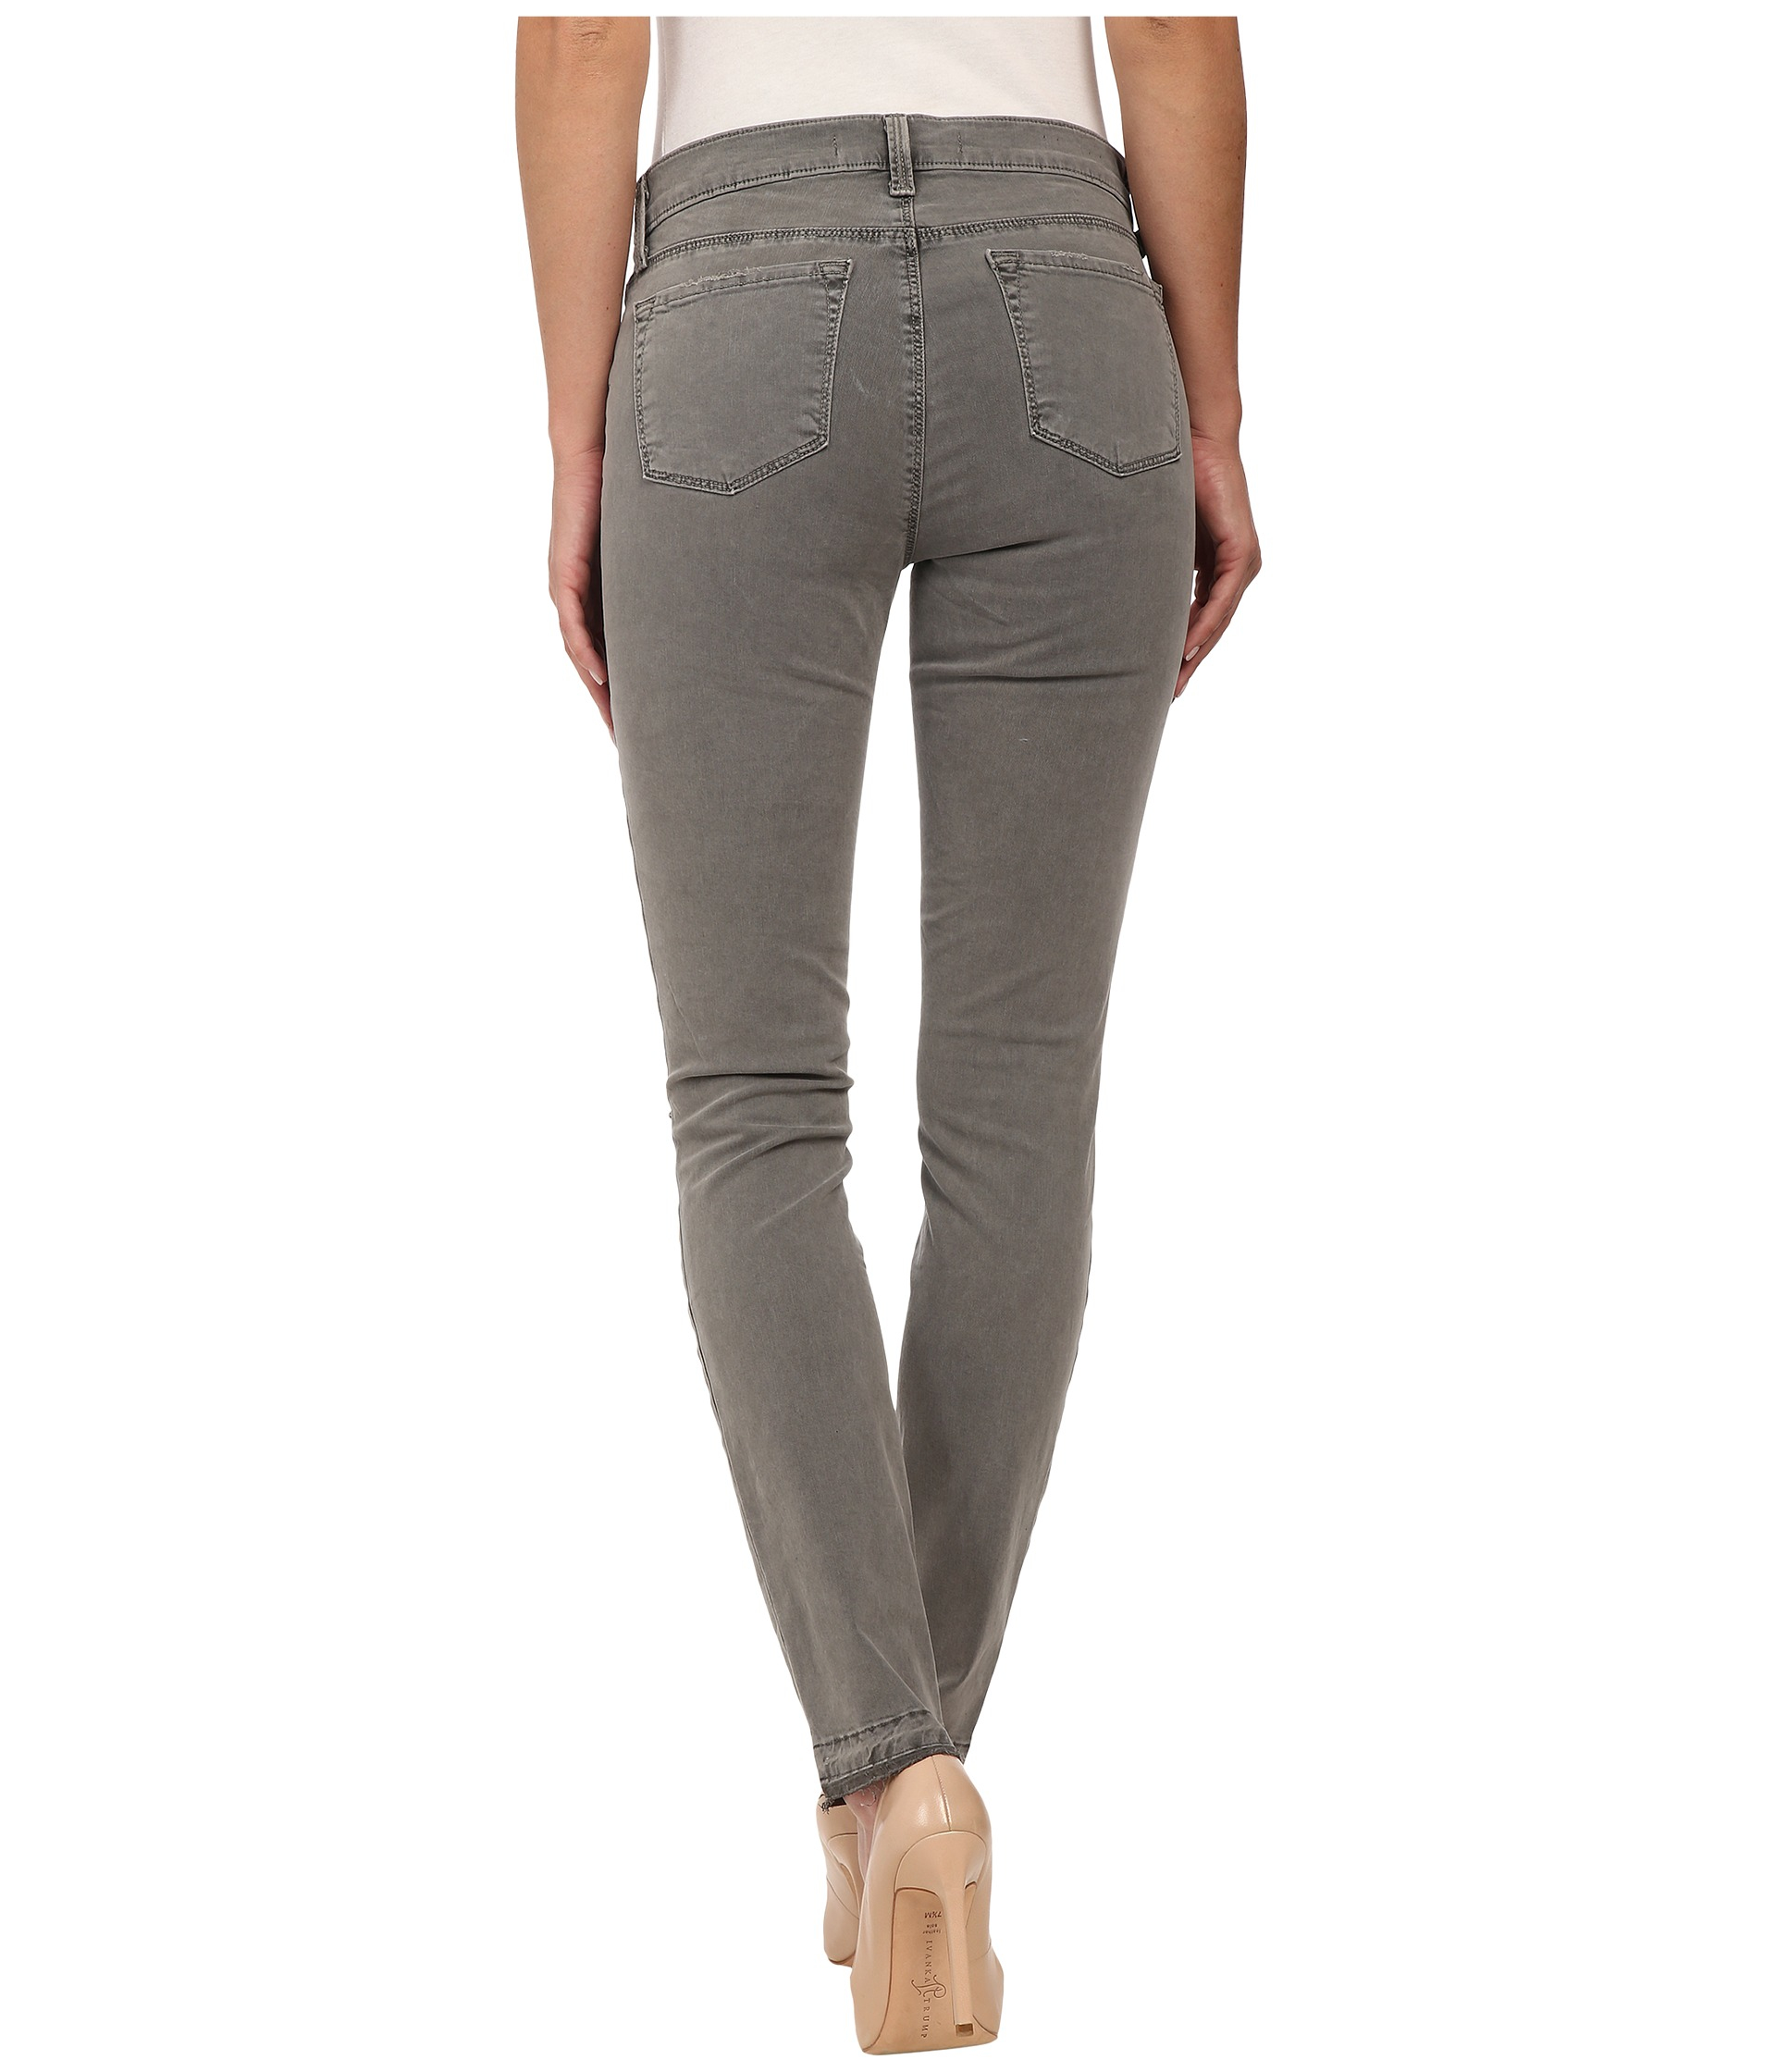 Silver skinny maternity jeans – Global fashion jeans models